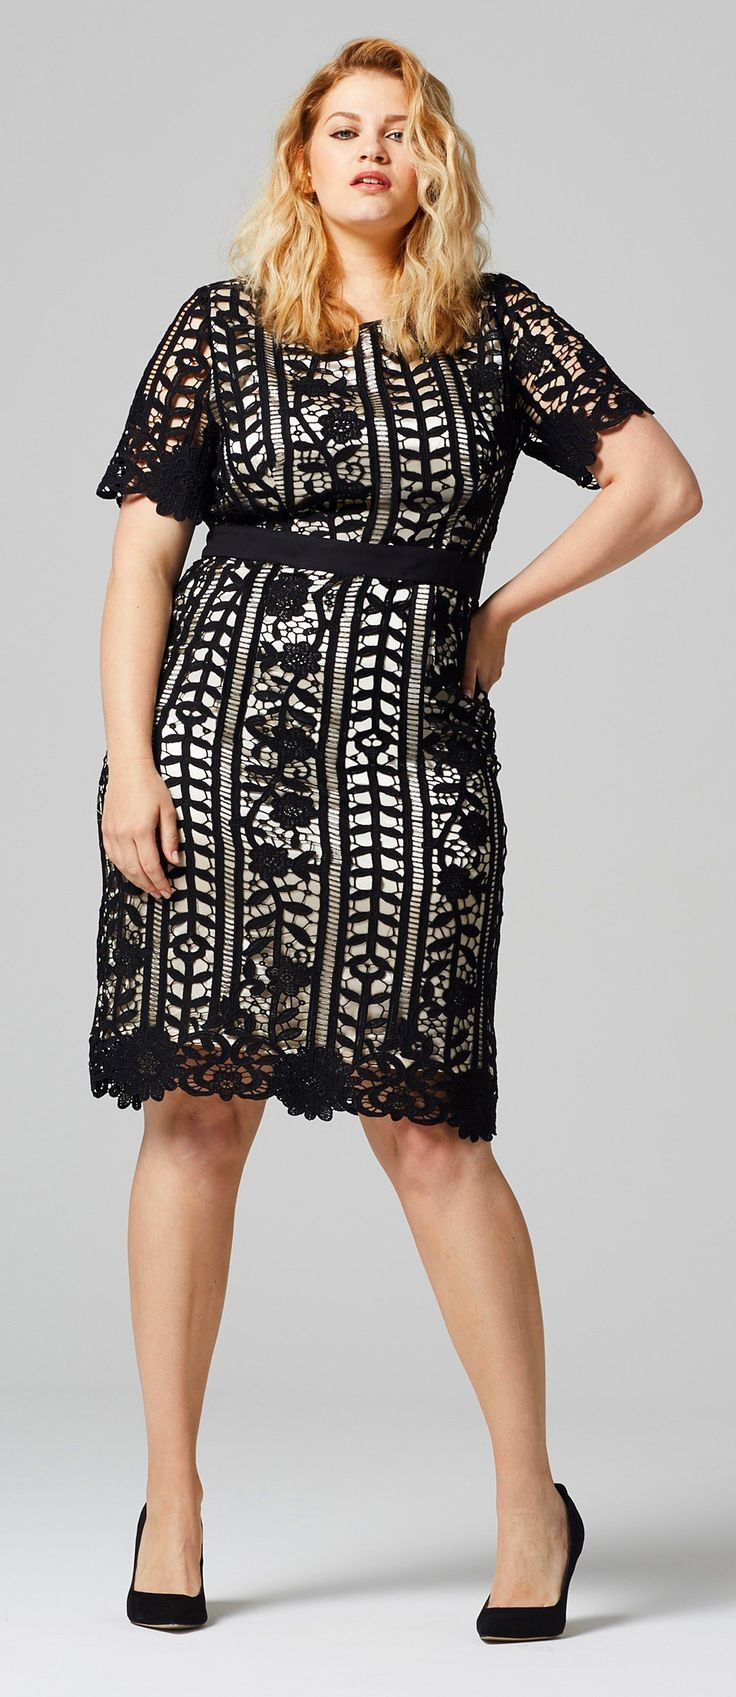 85b4c0192 45 Plus Size Wedding Guest Dresses {with Sleeves} - Plus Size Cocktail  Dresses - alexawebb.com